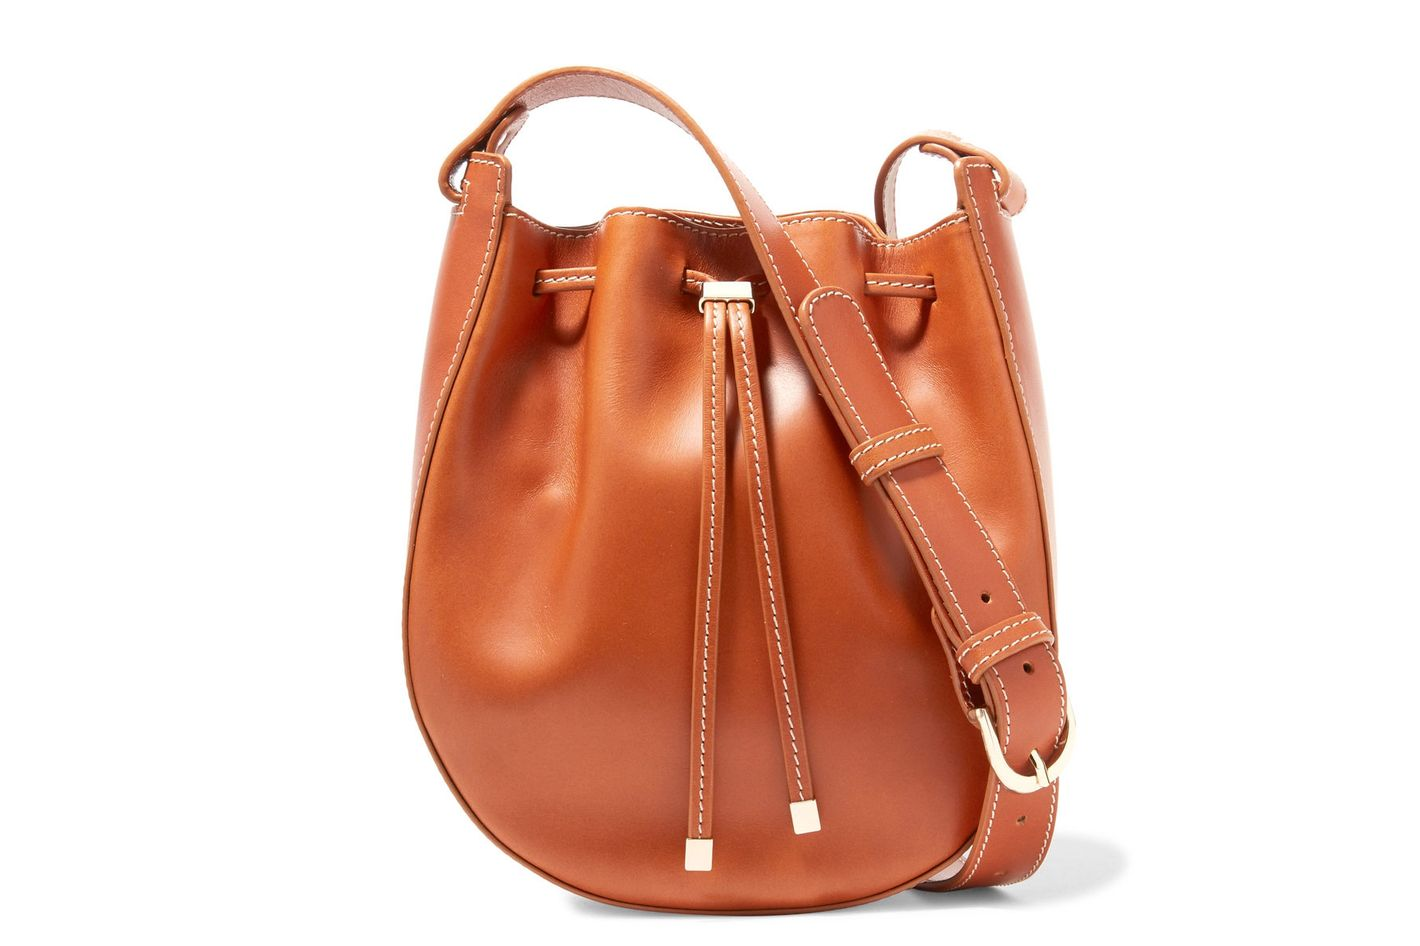 Vanessa Seward Dakota Leather Bucket Bag